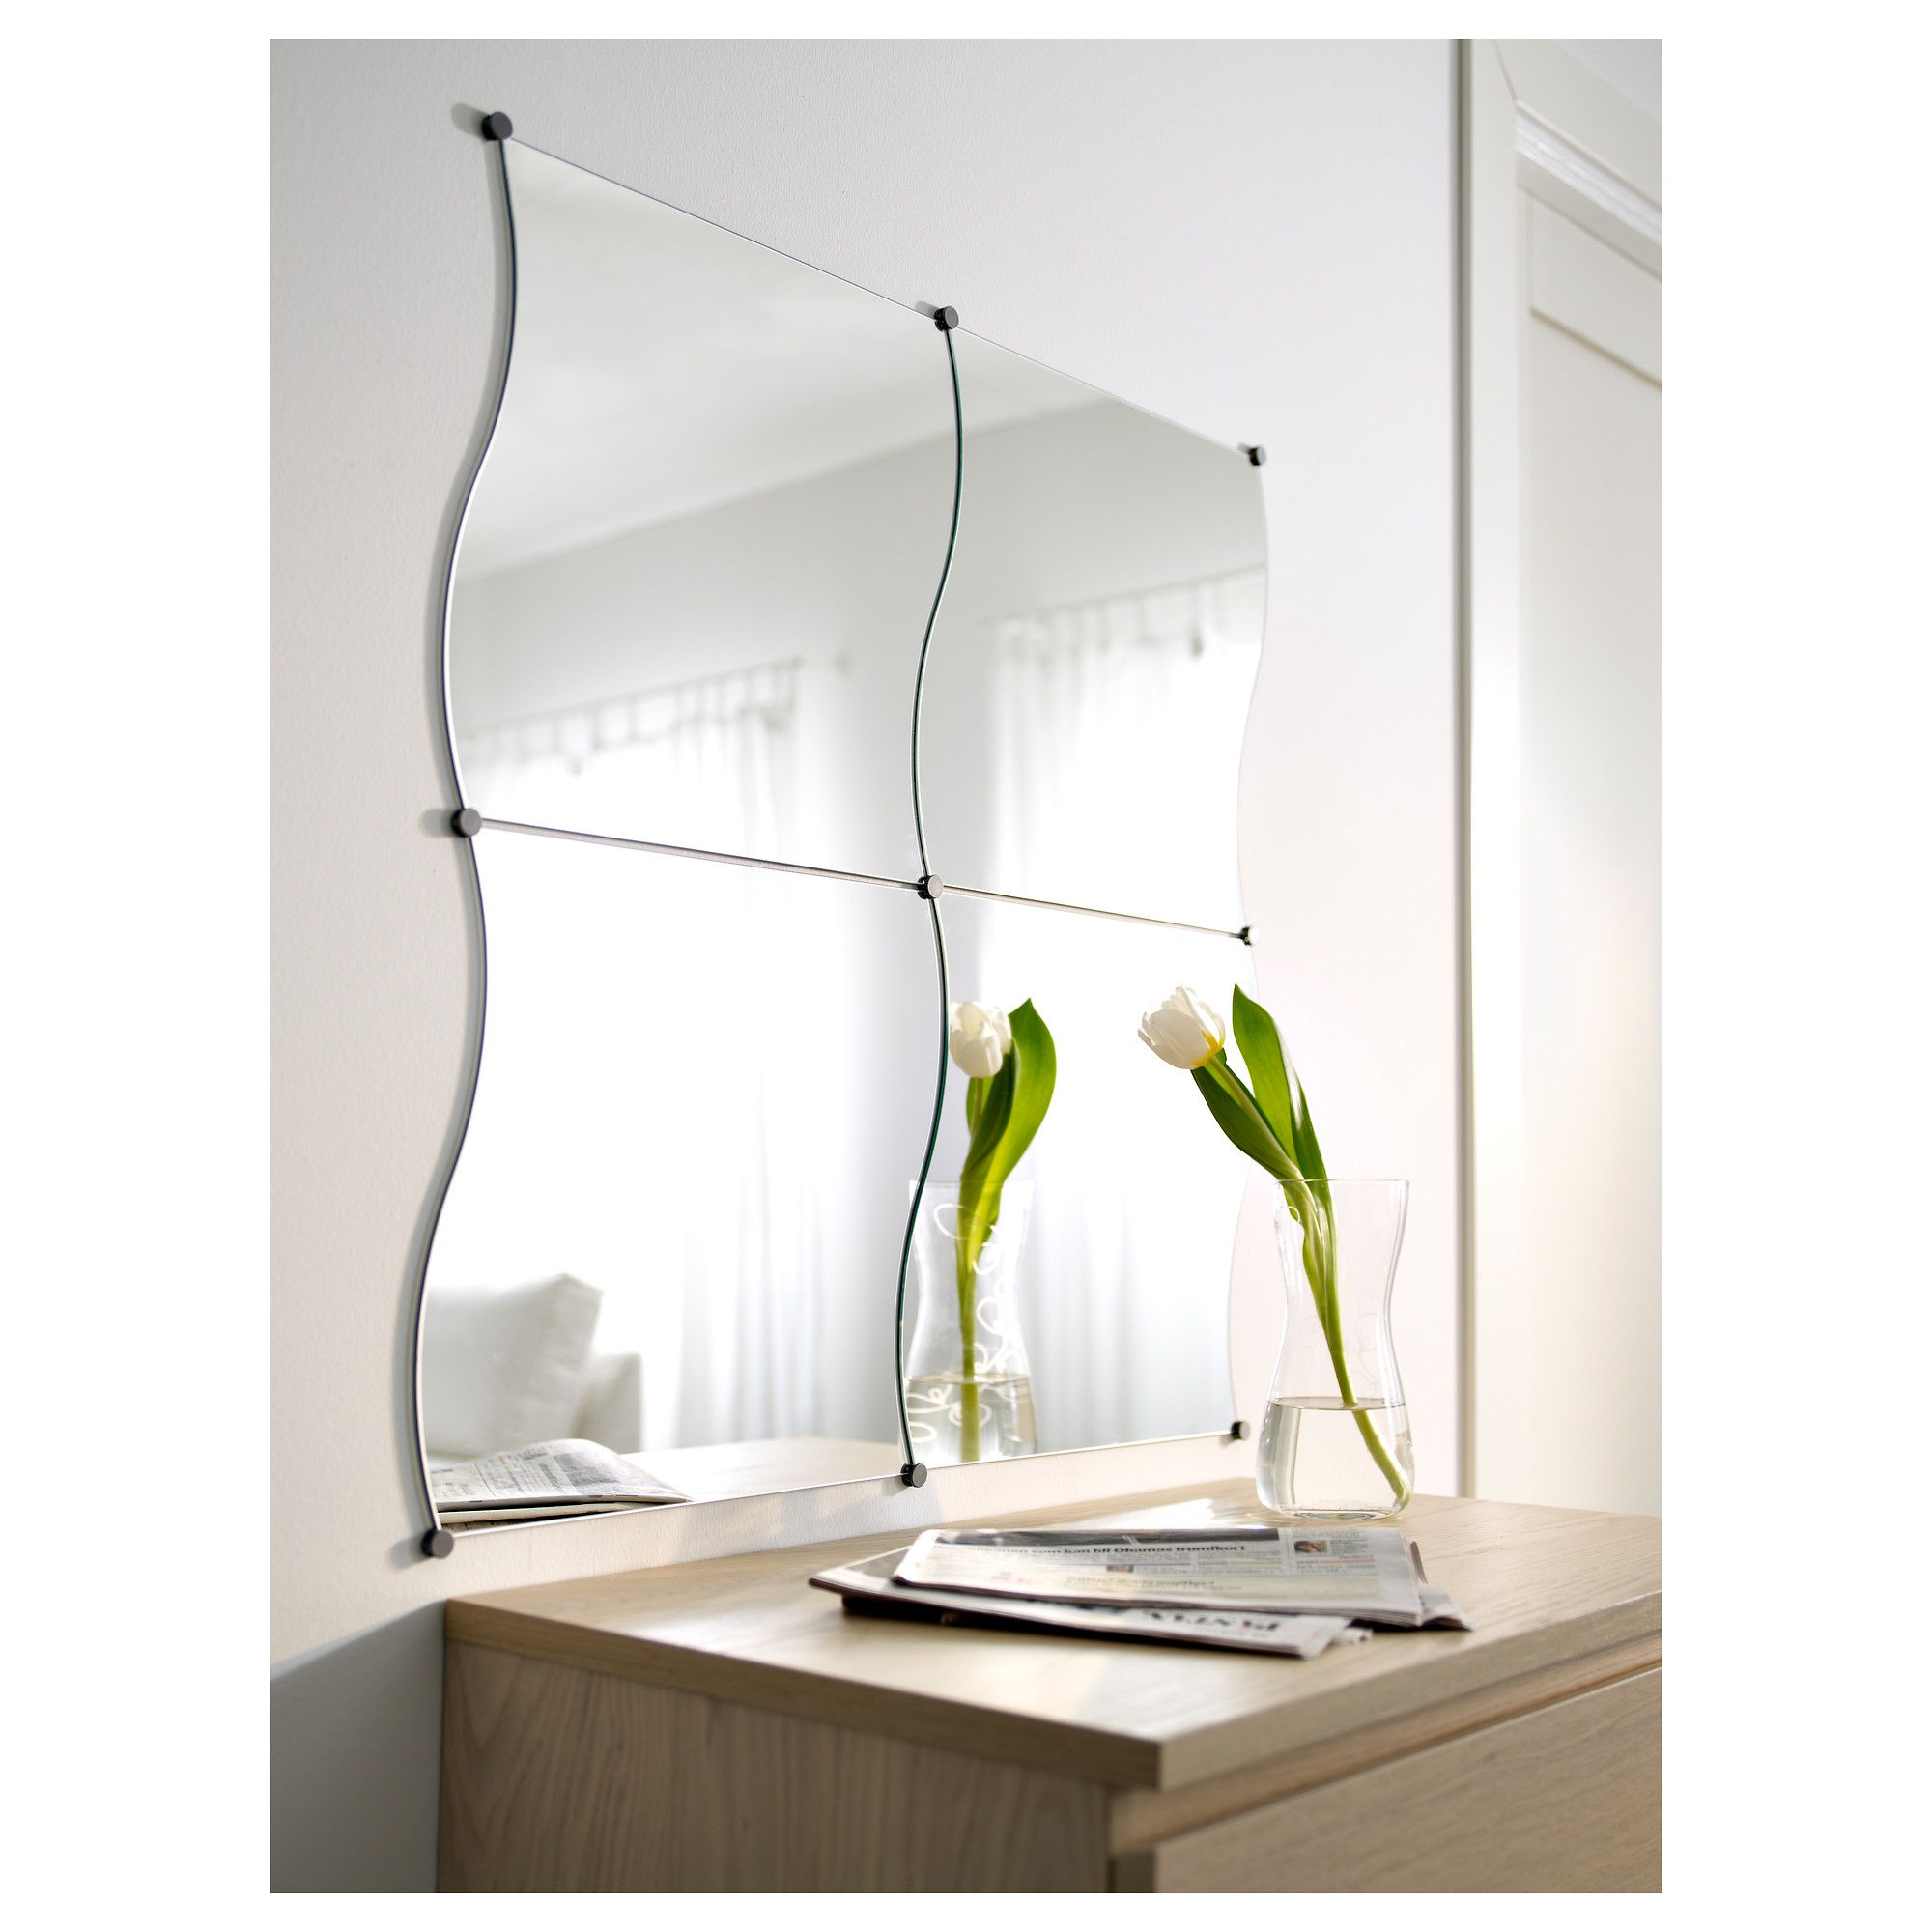 Krabb mirror ikea salon pinterest room krabb mirror ikea can be added on to to make any shape or size safety film reduces damage if glass is broken amipublicfo Gallery